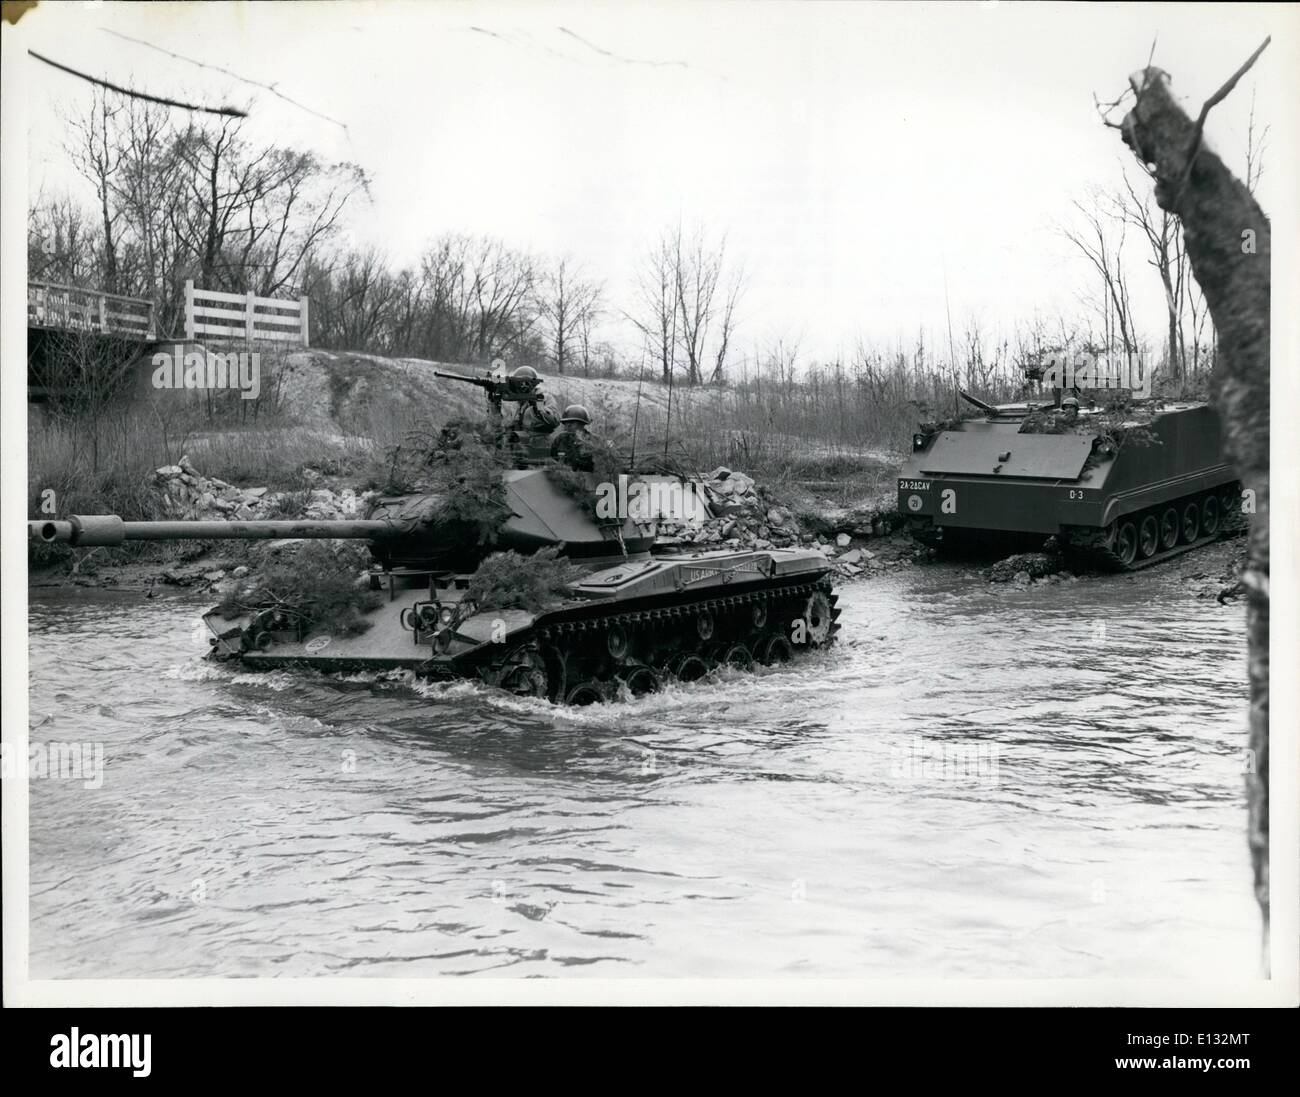 Feb. 26, 2012 - Men of the Second Armored Cavalry - An M-41 Tank and an M-59 armored personnel carrier of the Second Armored Cavalry regiment form a stream during a training exercise in which members of the organization deployed a reconnaissance platoon from a road march position. Other members of the Second Cavalry acted as aggressor troops. Forth George G. Meade, Maryland. May 31, 1957 - Stock Image